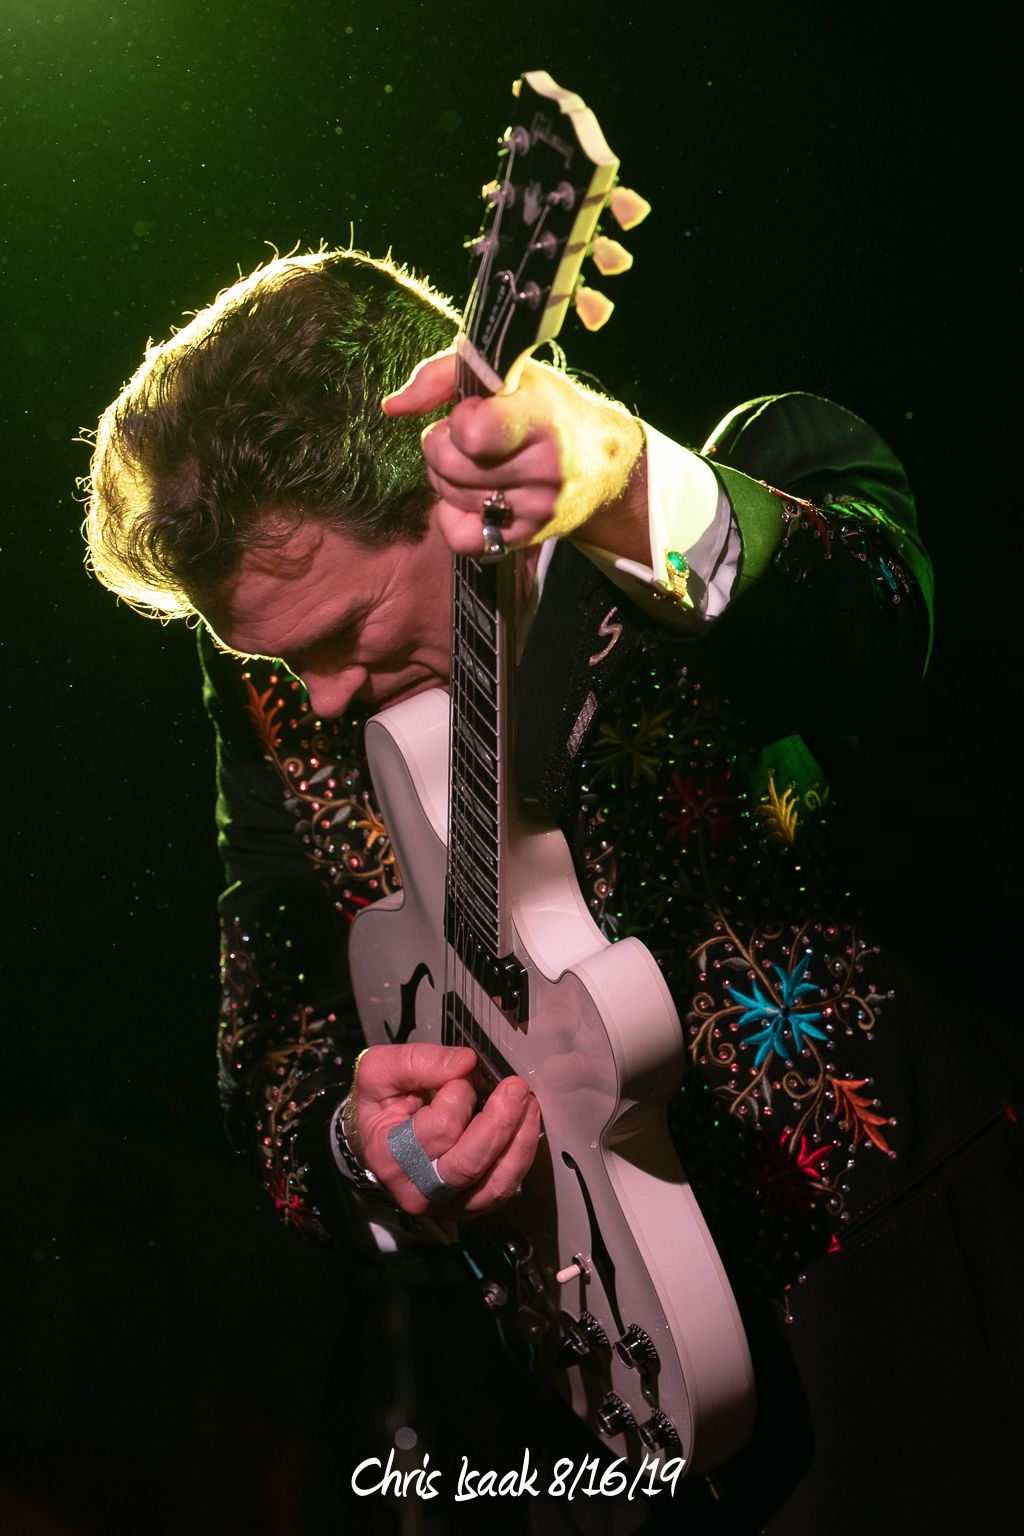 Chris Isaak 8/16/19